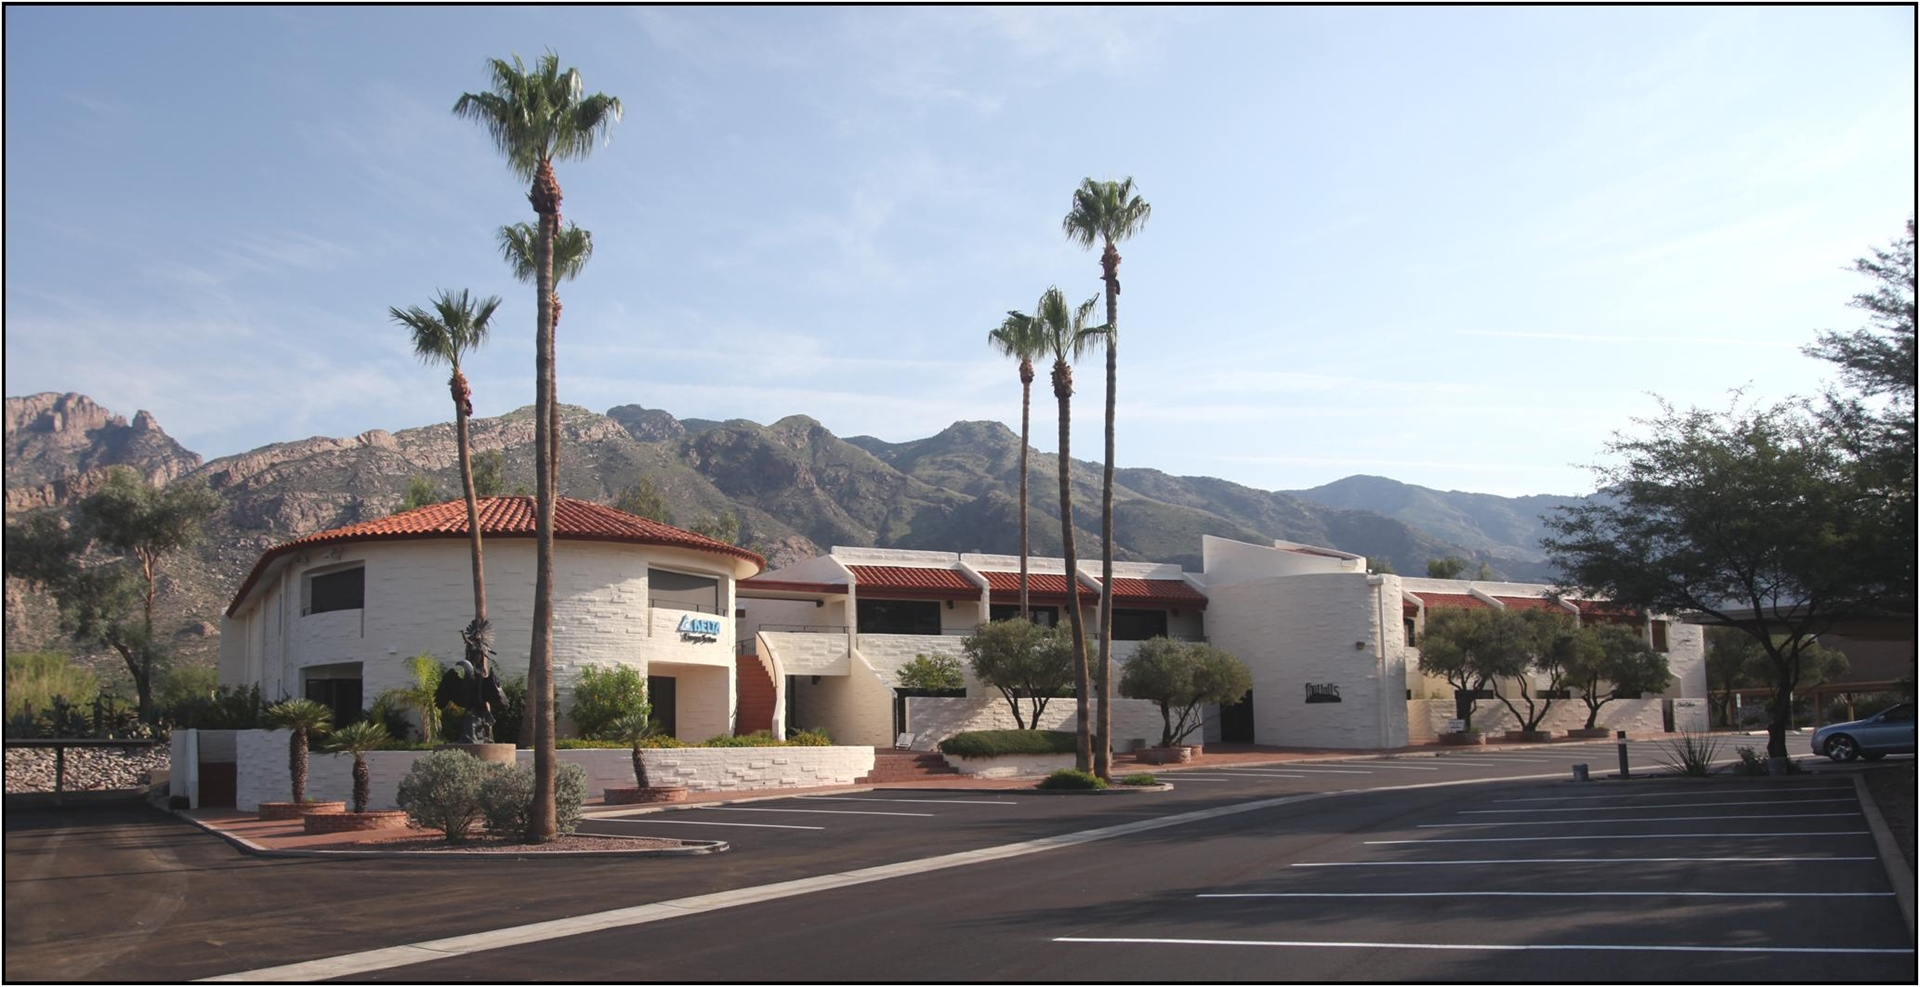 Tucson psychiatry office exterior building, palm trees, and parking lot